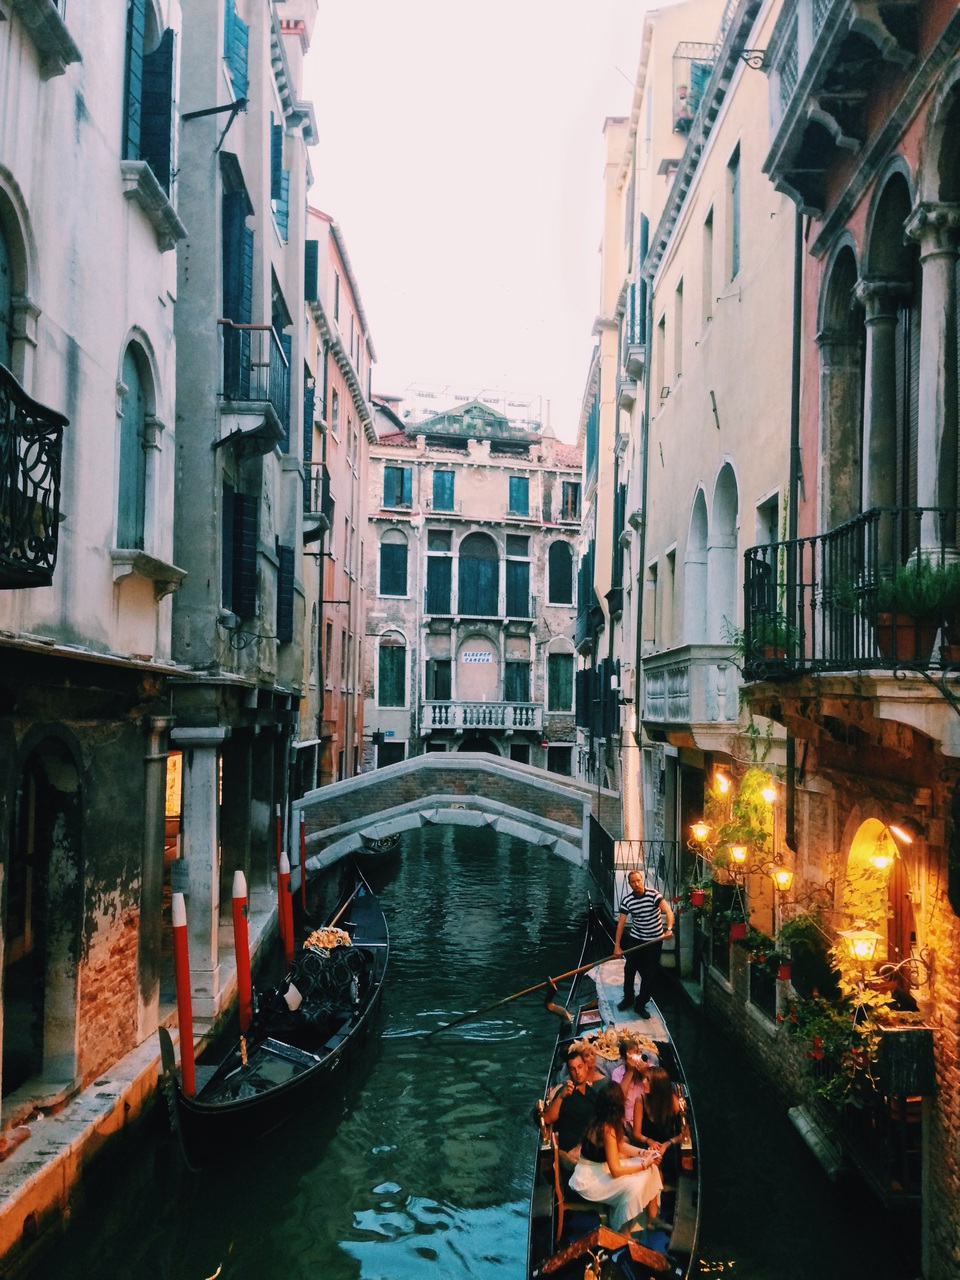 artsy, ascetic, beautiful, city, cute, europe, girly, gondola, inspire, inspiring, italy, life, love, nature, pretty, quotes, travel, tumblr, venice, water, touristy